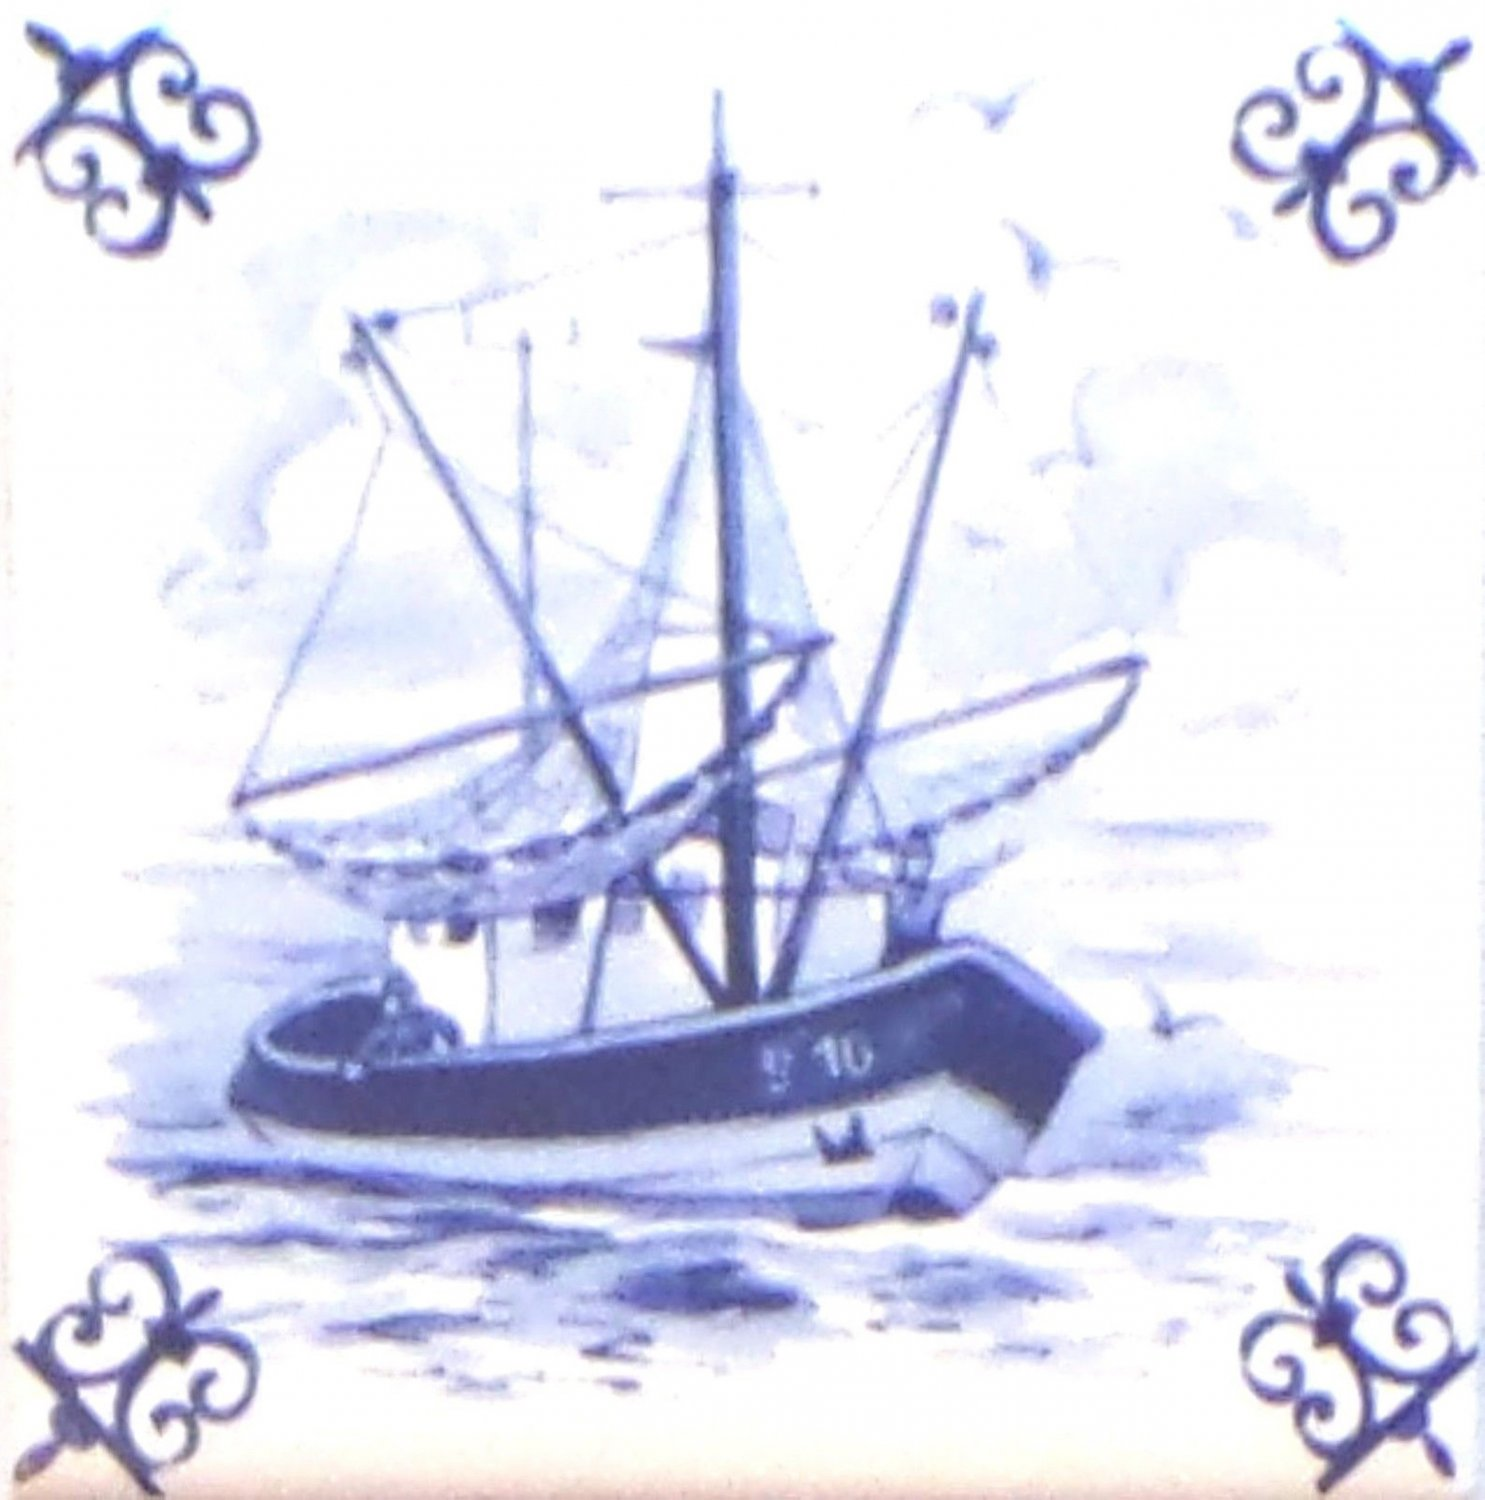 Blue Fishing Boat Ox Tail Ceramic Tile Accent Kiln Fired Back Splash Delft Theme 4.25""